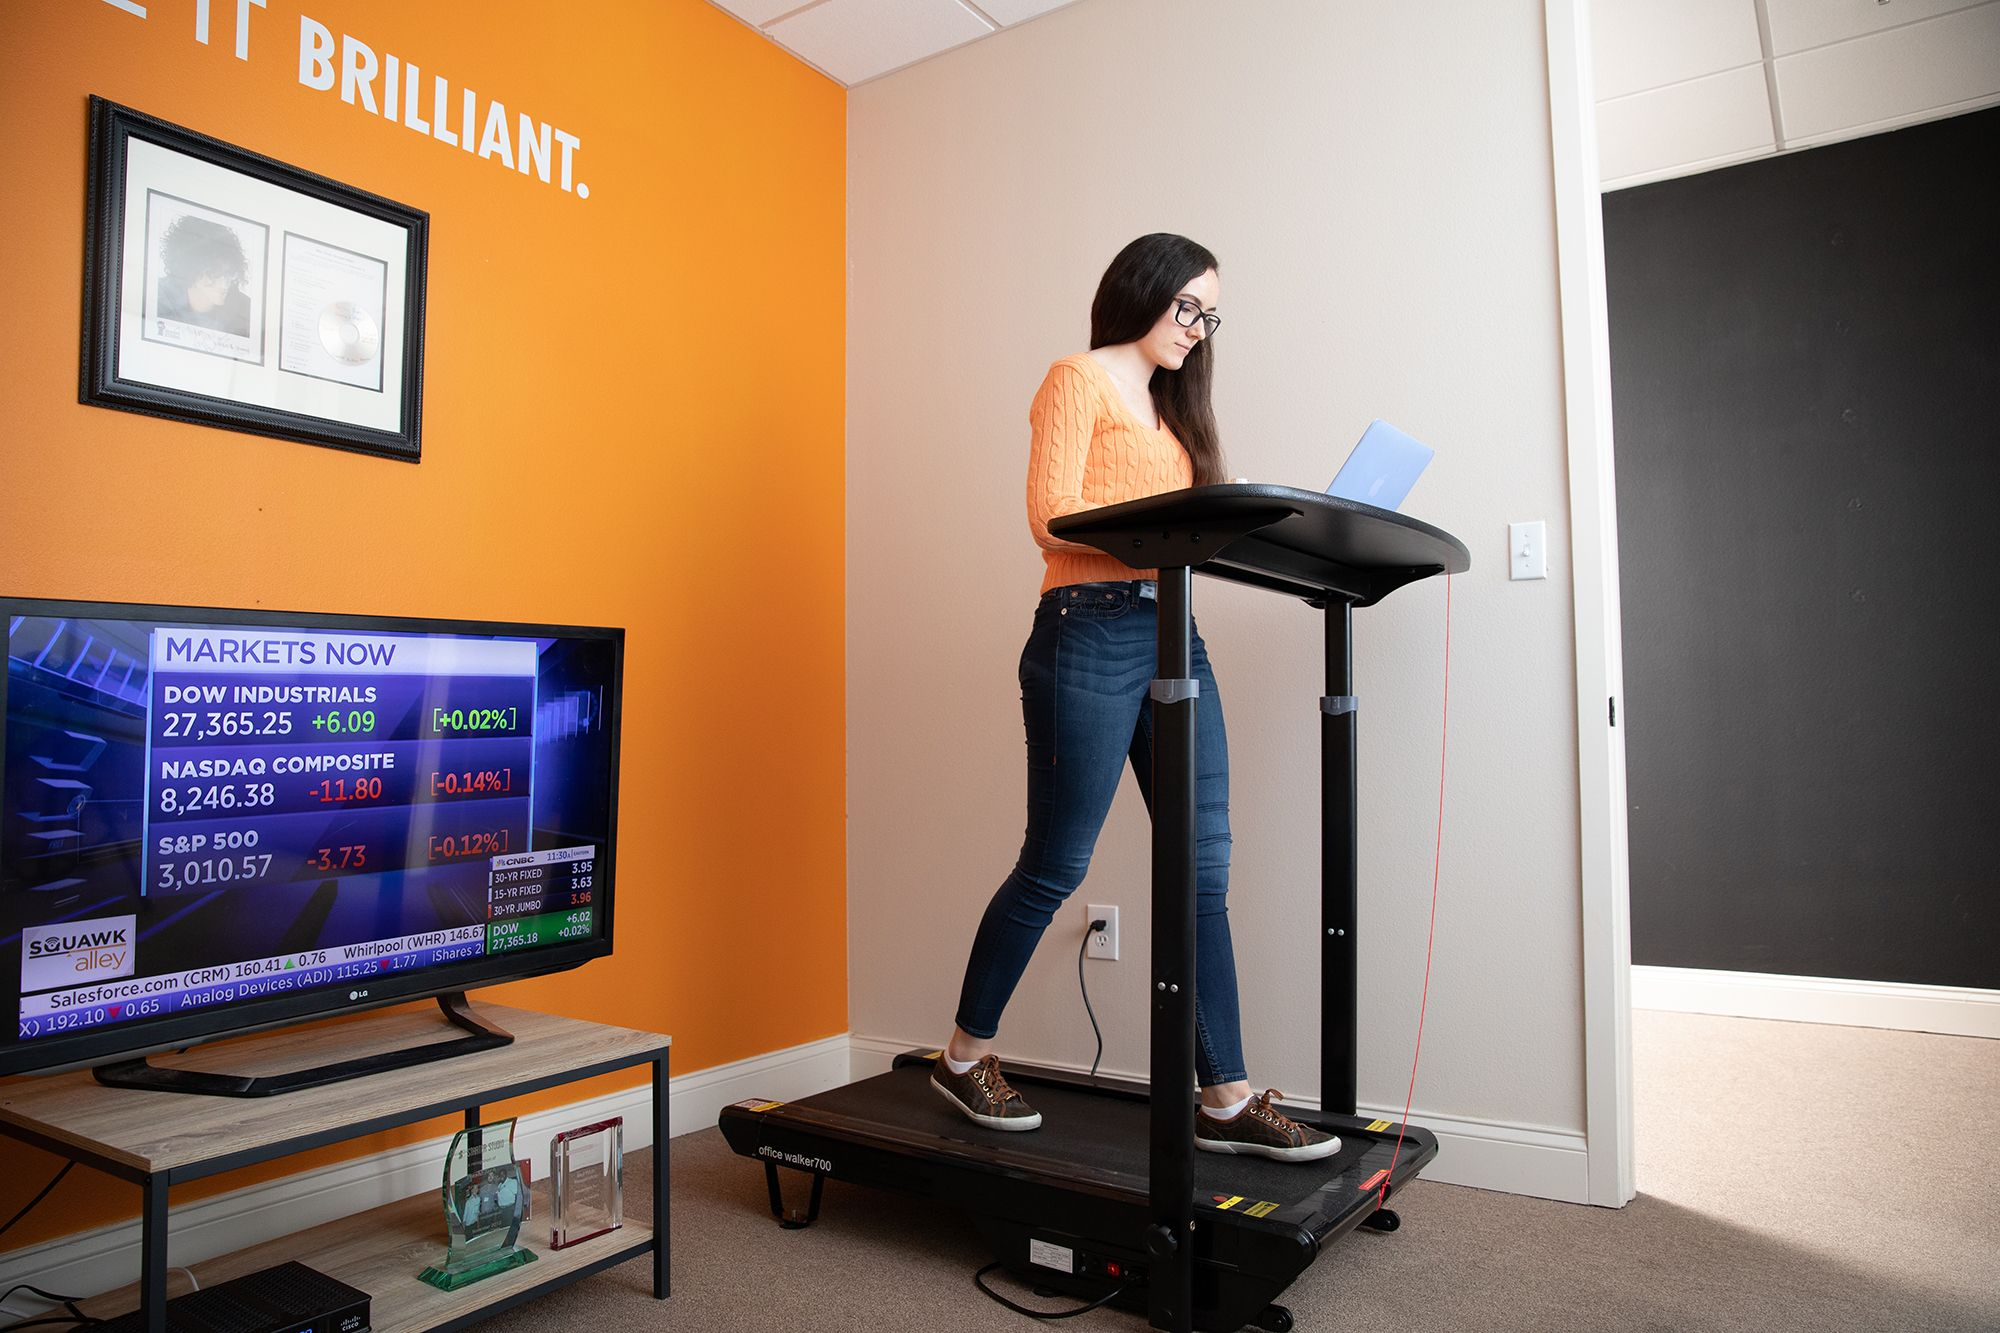 Neny Lairet '21 keeps track of the markets while on the treadmill at Knoza Consulting.